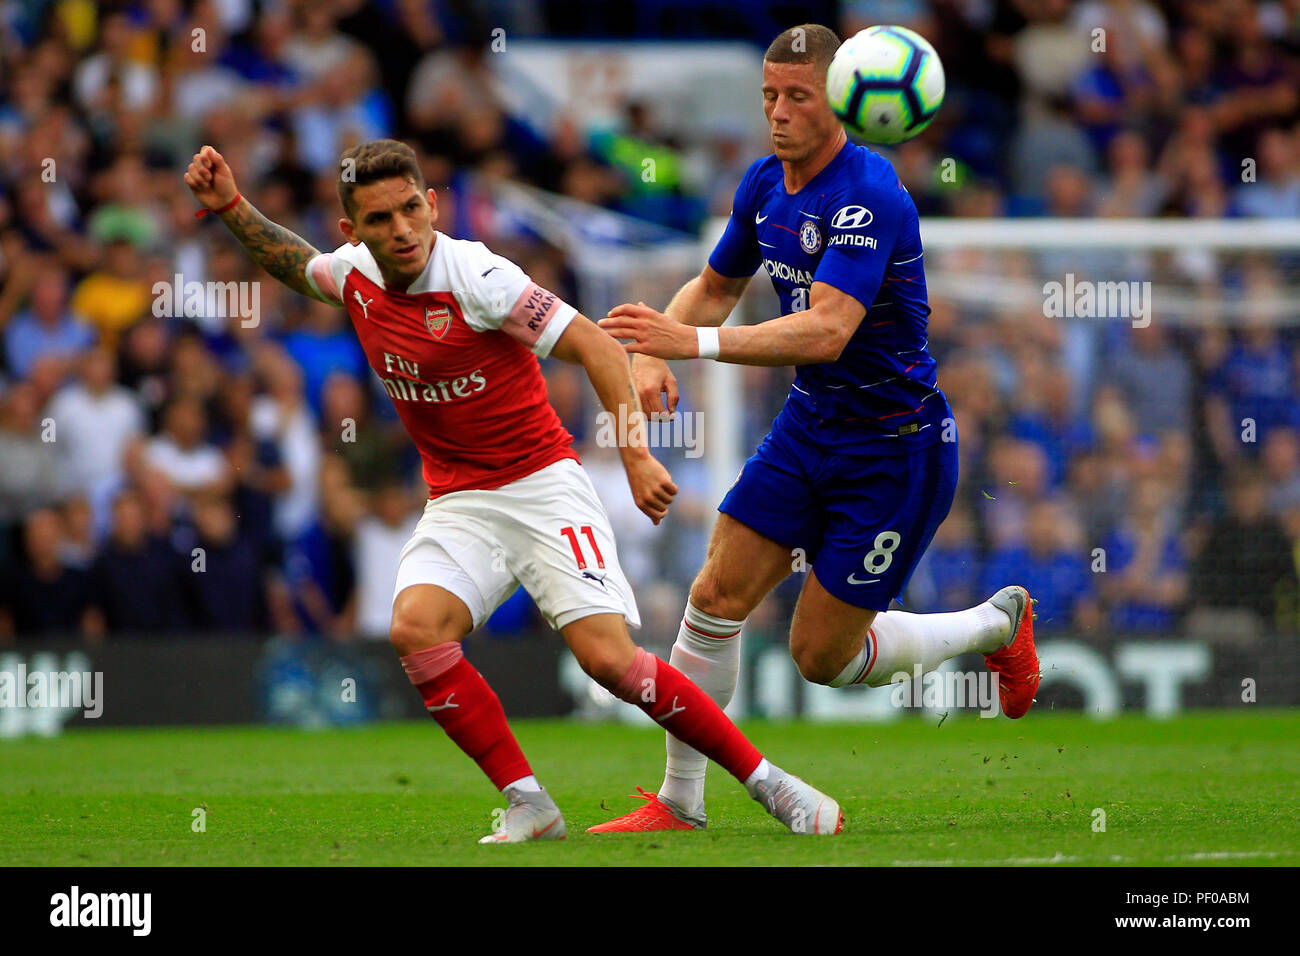 Lucas Torreira Of Arsenal L In Action With Ross Barkley Of Chelsea R Premier League Match Chelsea V Arsenal At Stamford Bridge In London On Saturday